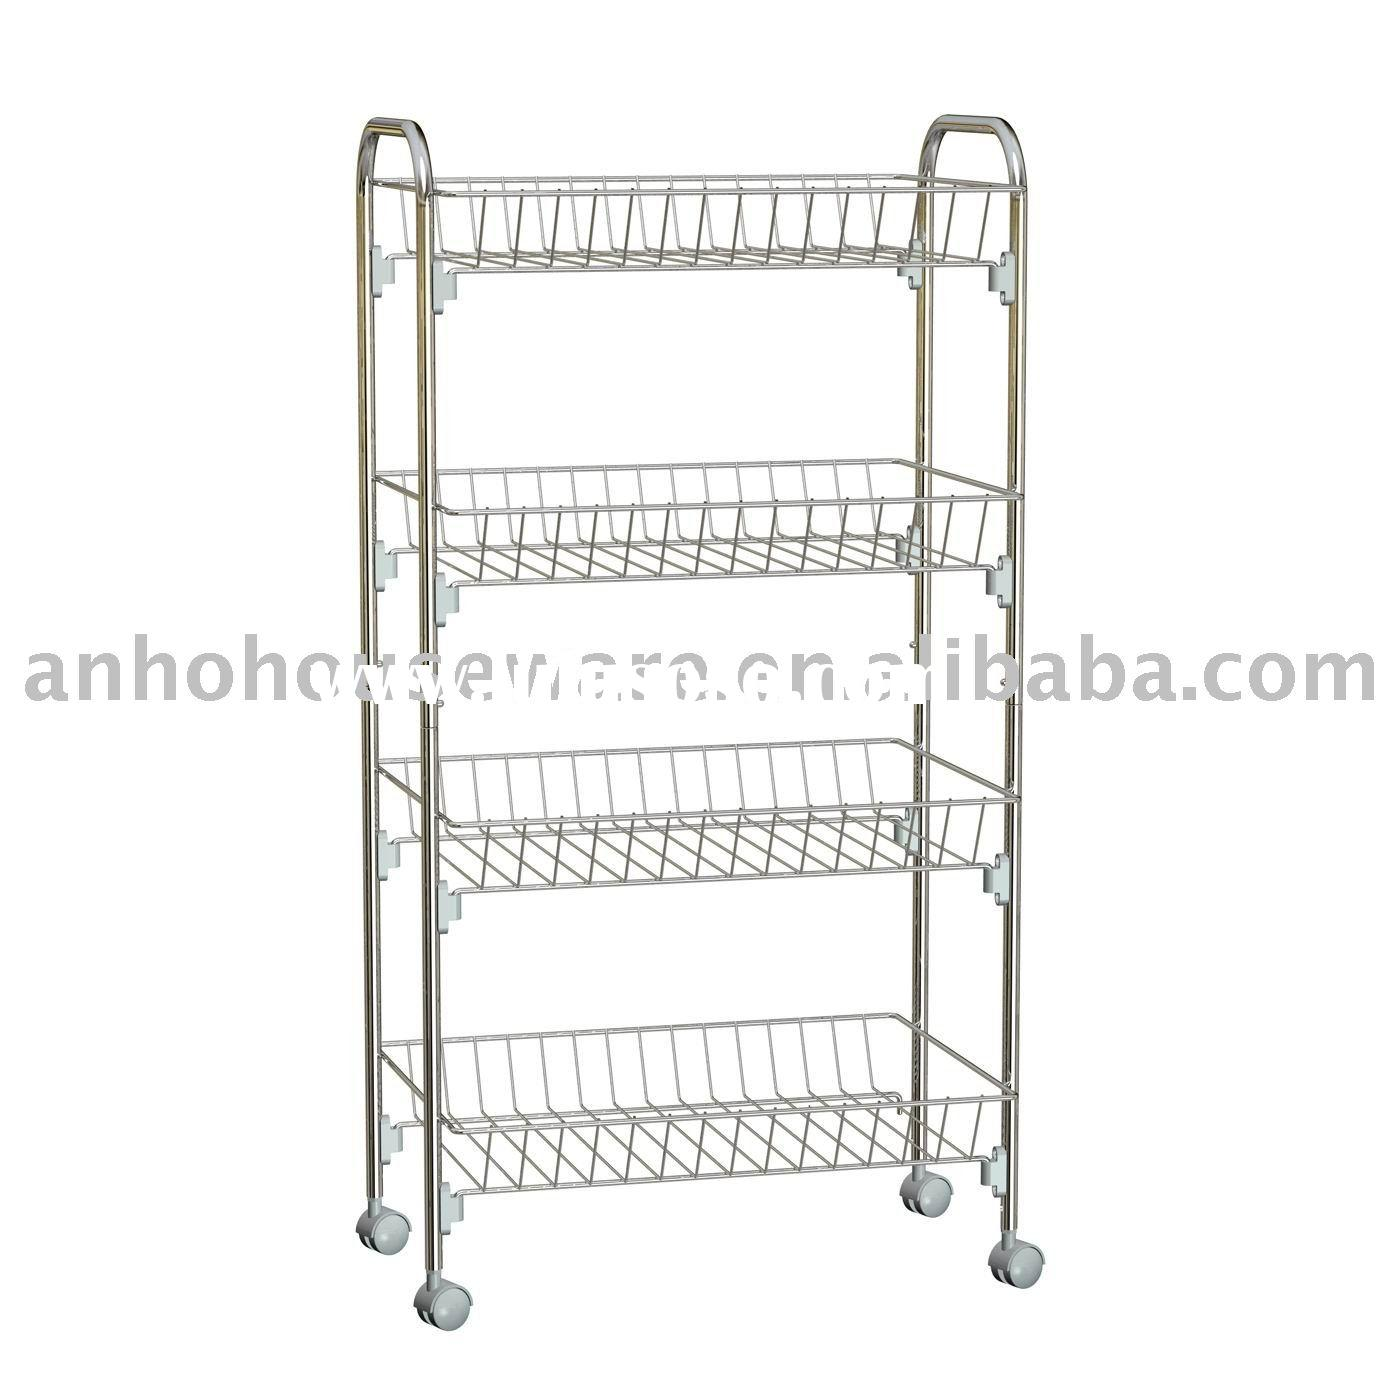 4-tier storage rack with wheels